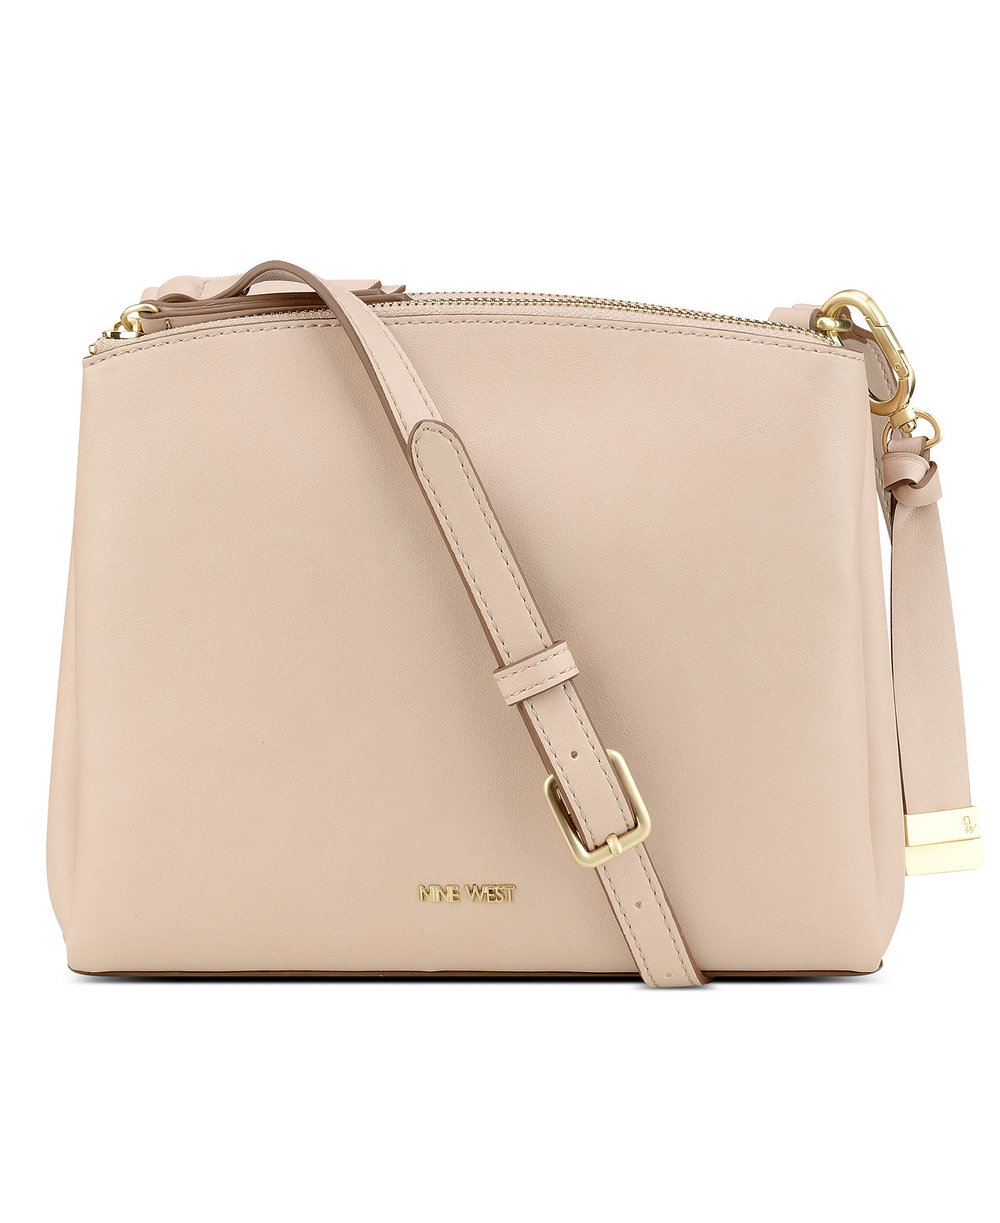 nine west tan crossbody.jpeg